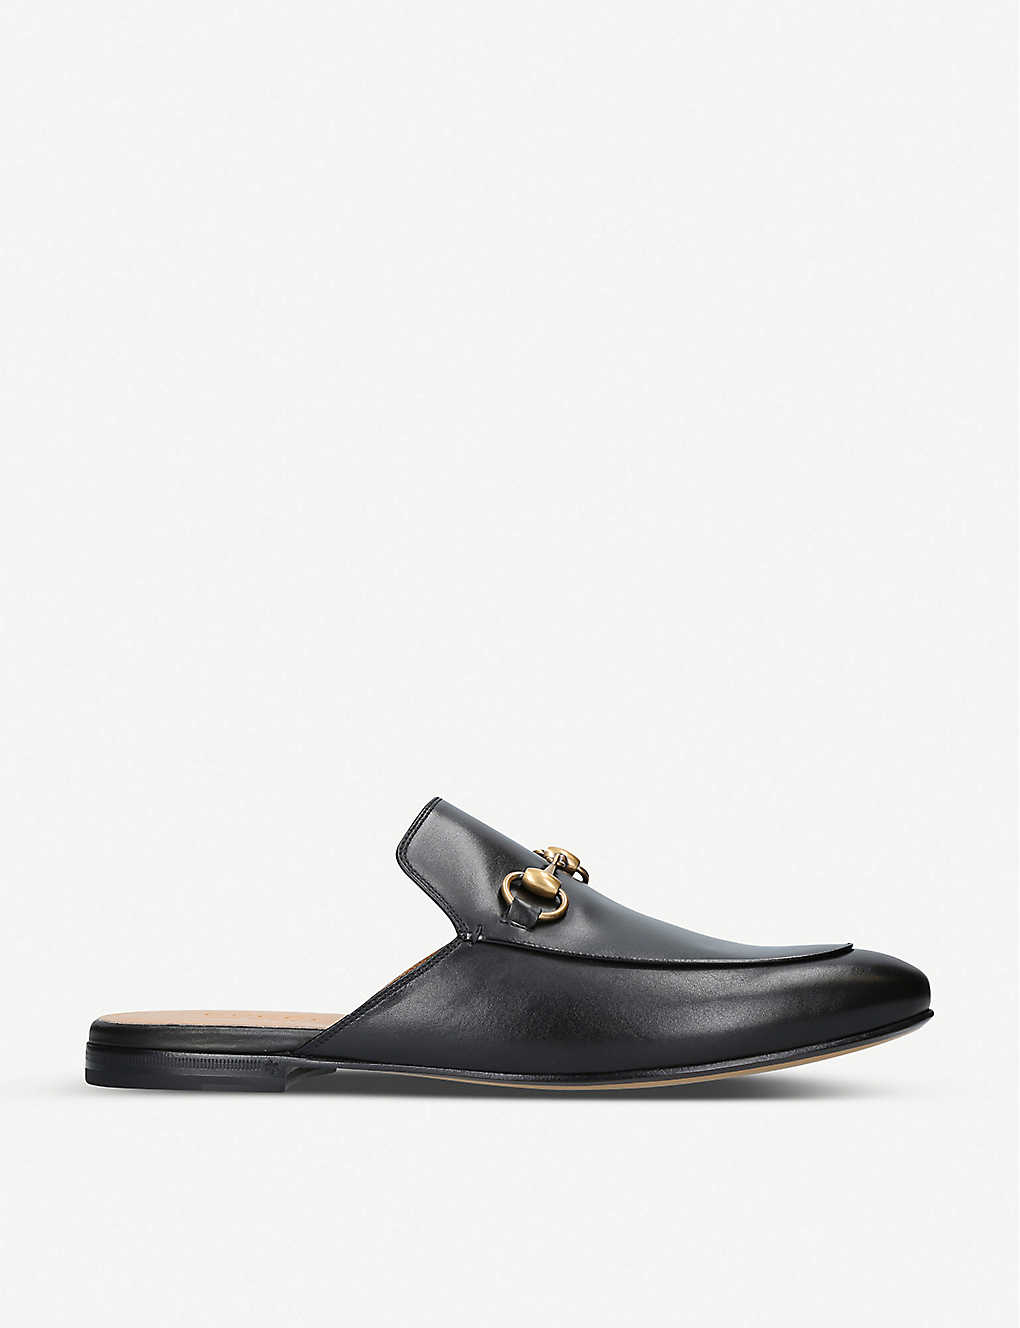 Gucci Shoes Princetown leather slippers